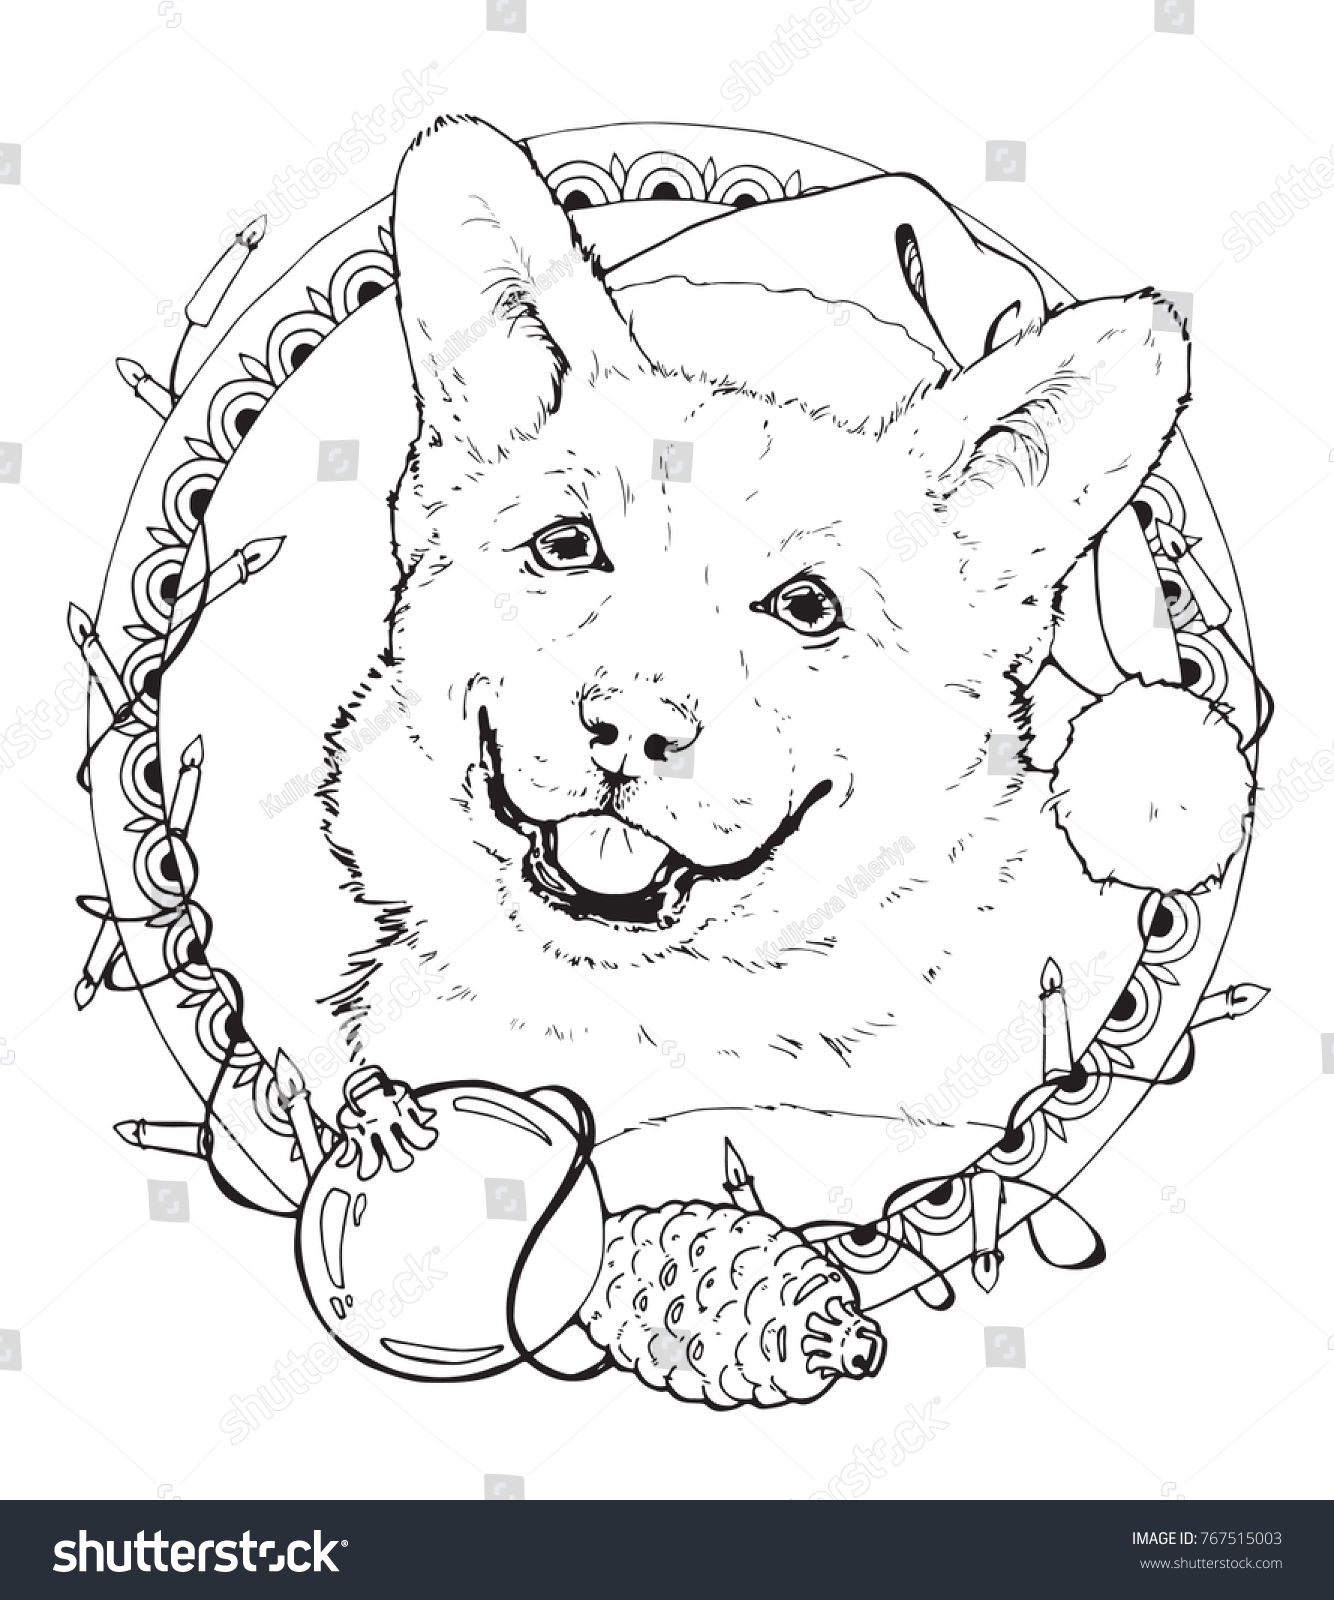 corgi coloring pages Coloring Page Christmas Corgi Decorative Frame Stock Vector  corgi coloring pages